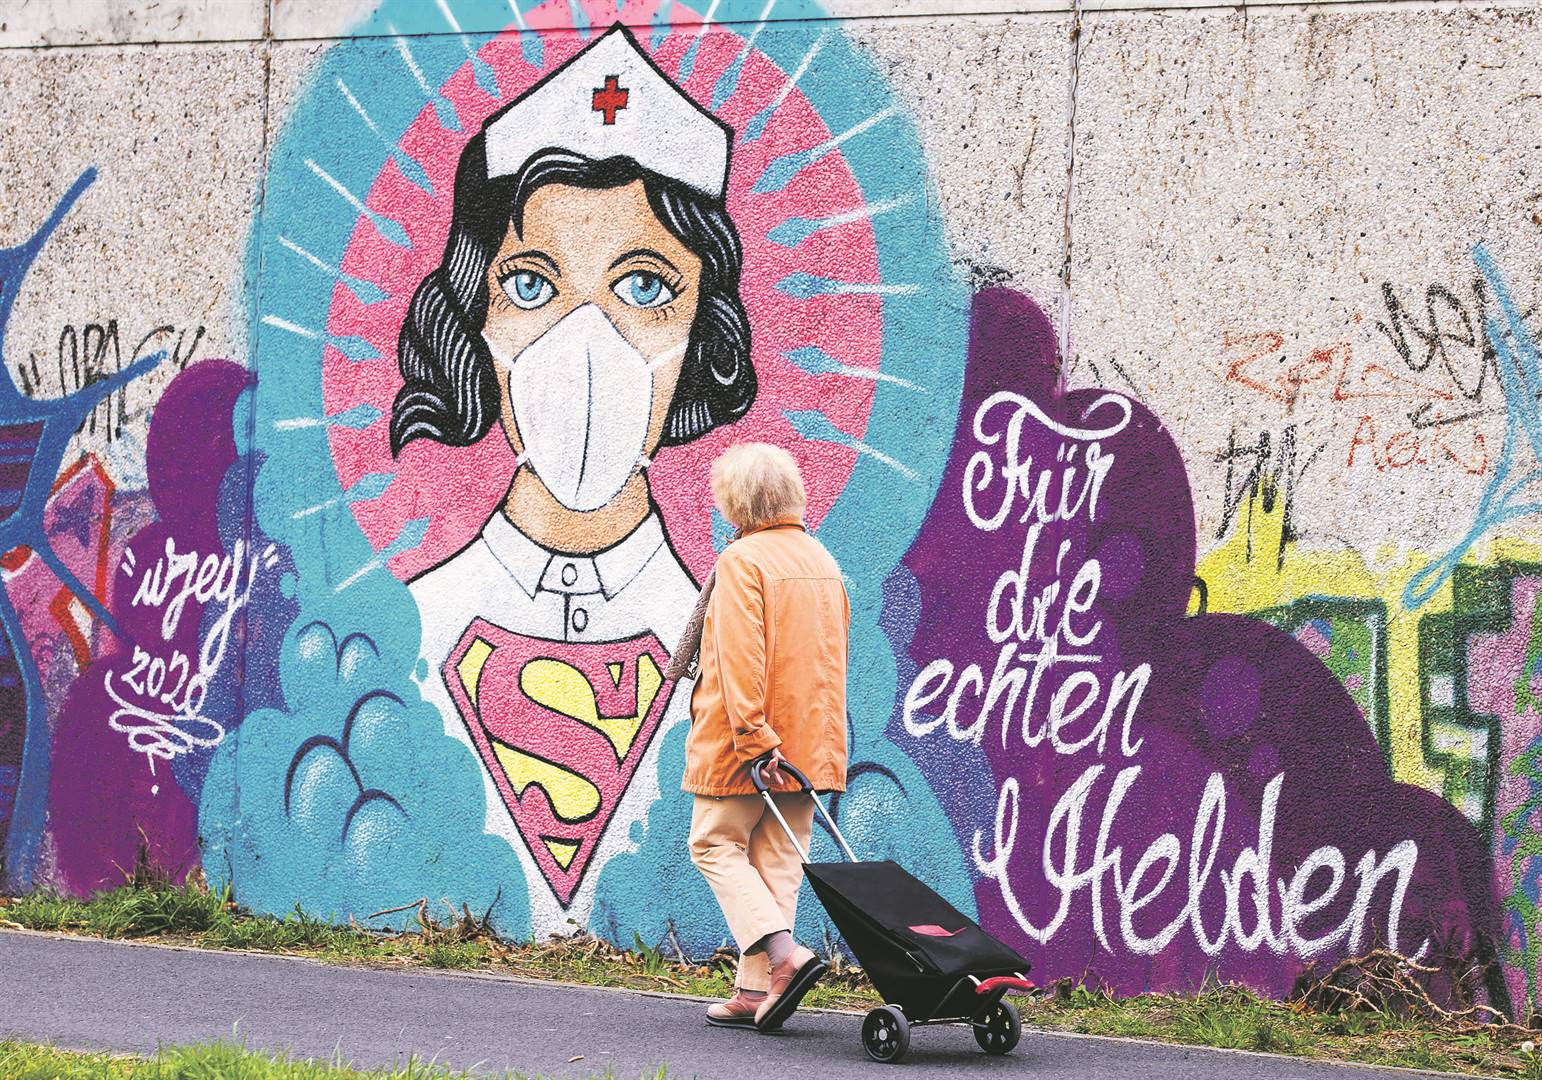 A woman walks past street art painted by German artist Kai 'Uzey'Wohlgemuth in Hamm, Germany, where more than 130 000 cases of the Covid-19 coronavirus have been confirmed, with more than 3 000 deaths and 57 000 recoveries. Picture: Lars Baron / Getty Images